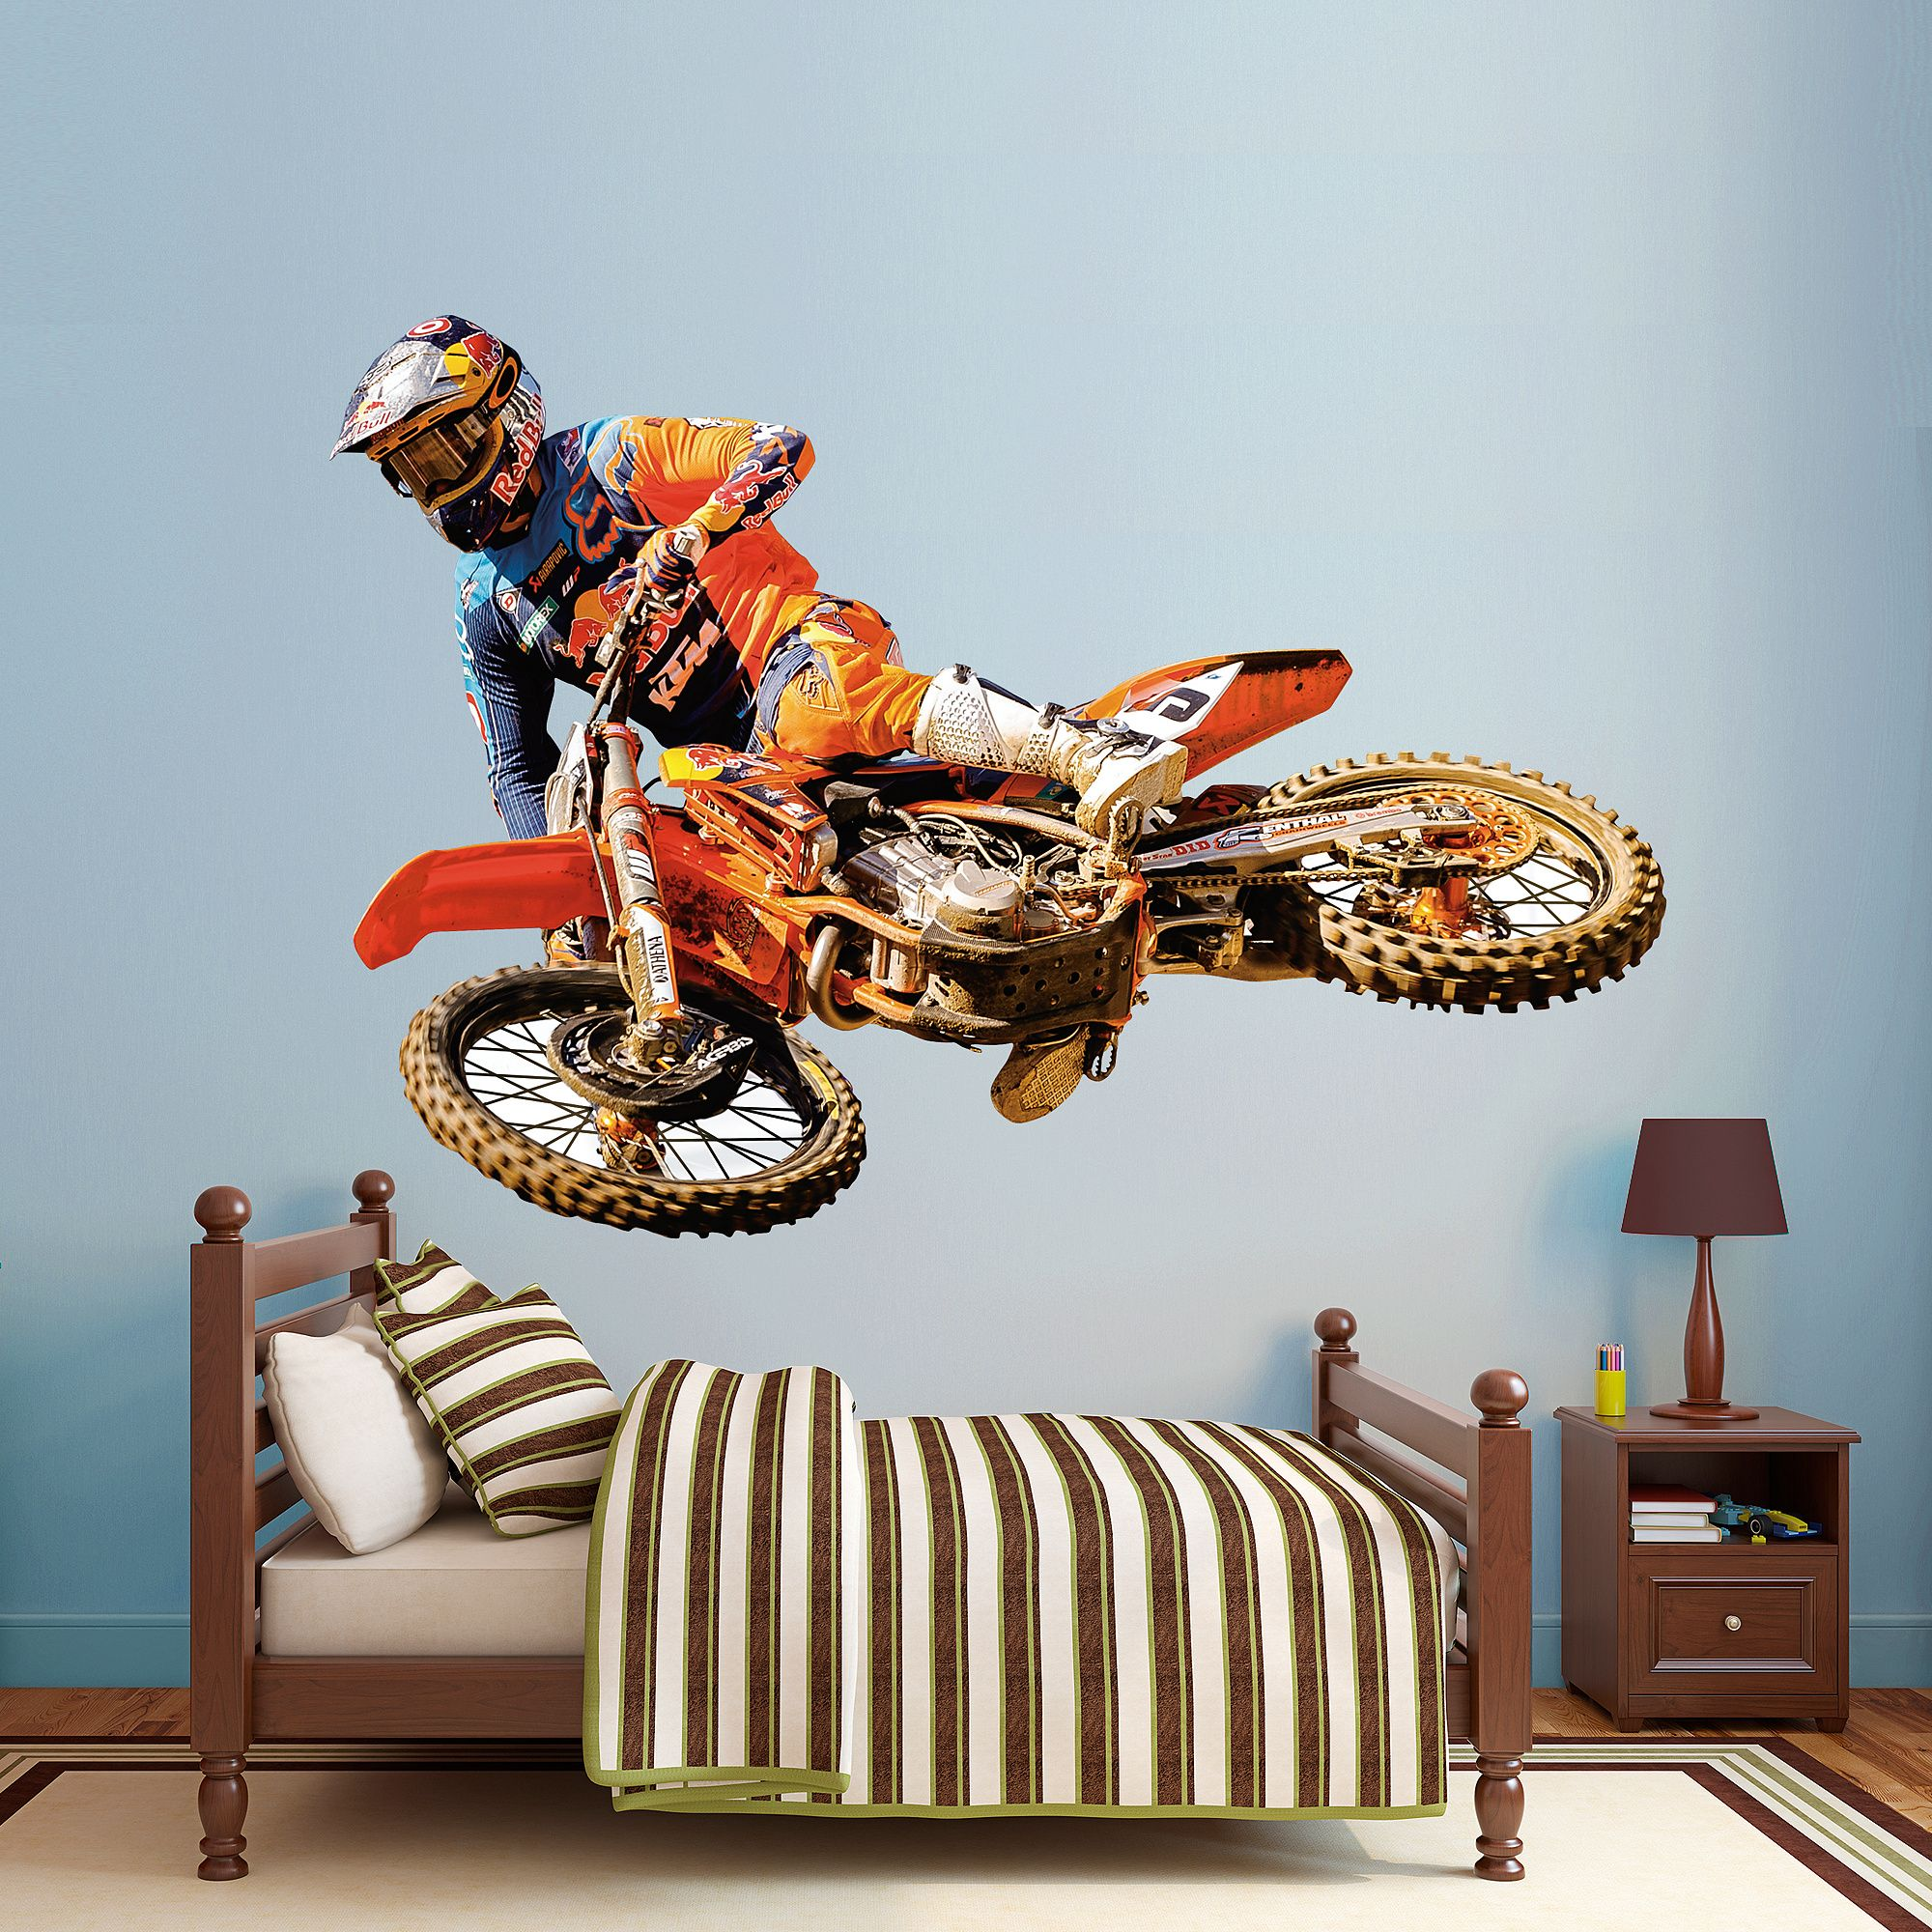 les 25 meilleures id es de la cat gorie quipement de motocross pour enfants sur pinterest. Black Bedroom Furniture Sets. Home Design Ideas